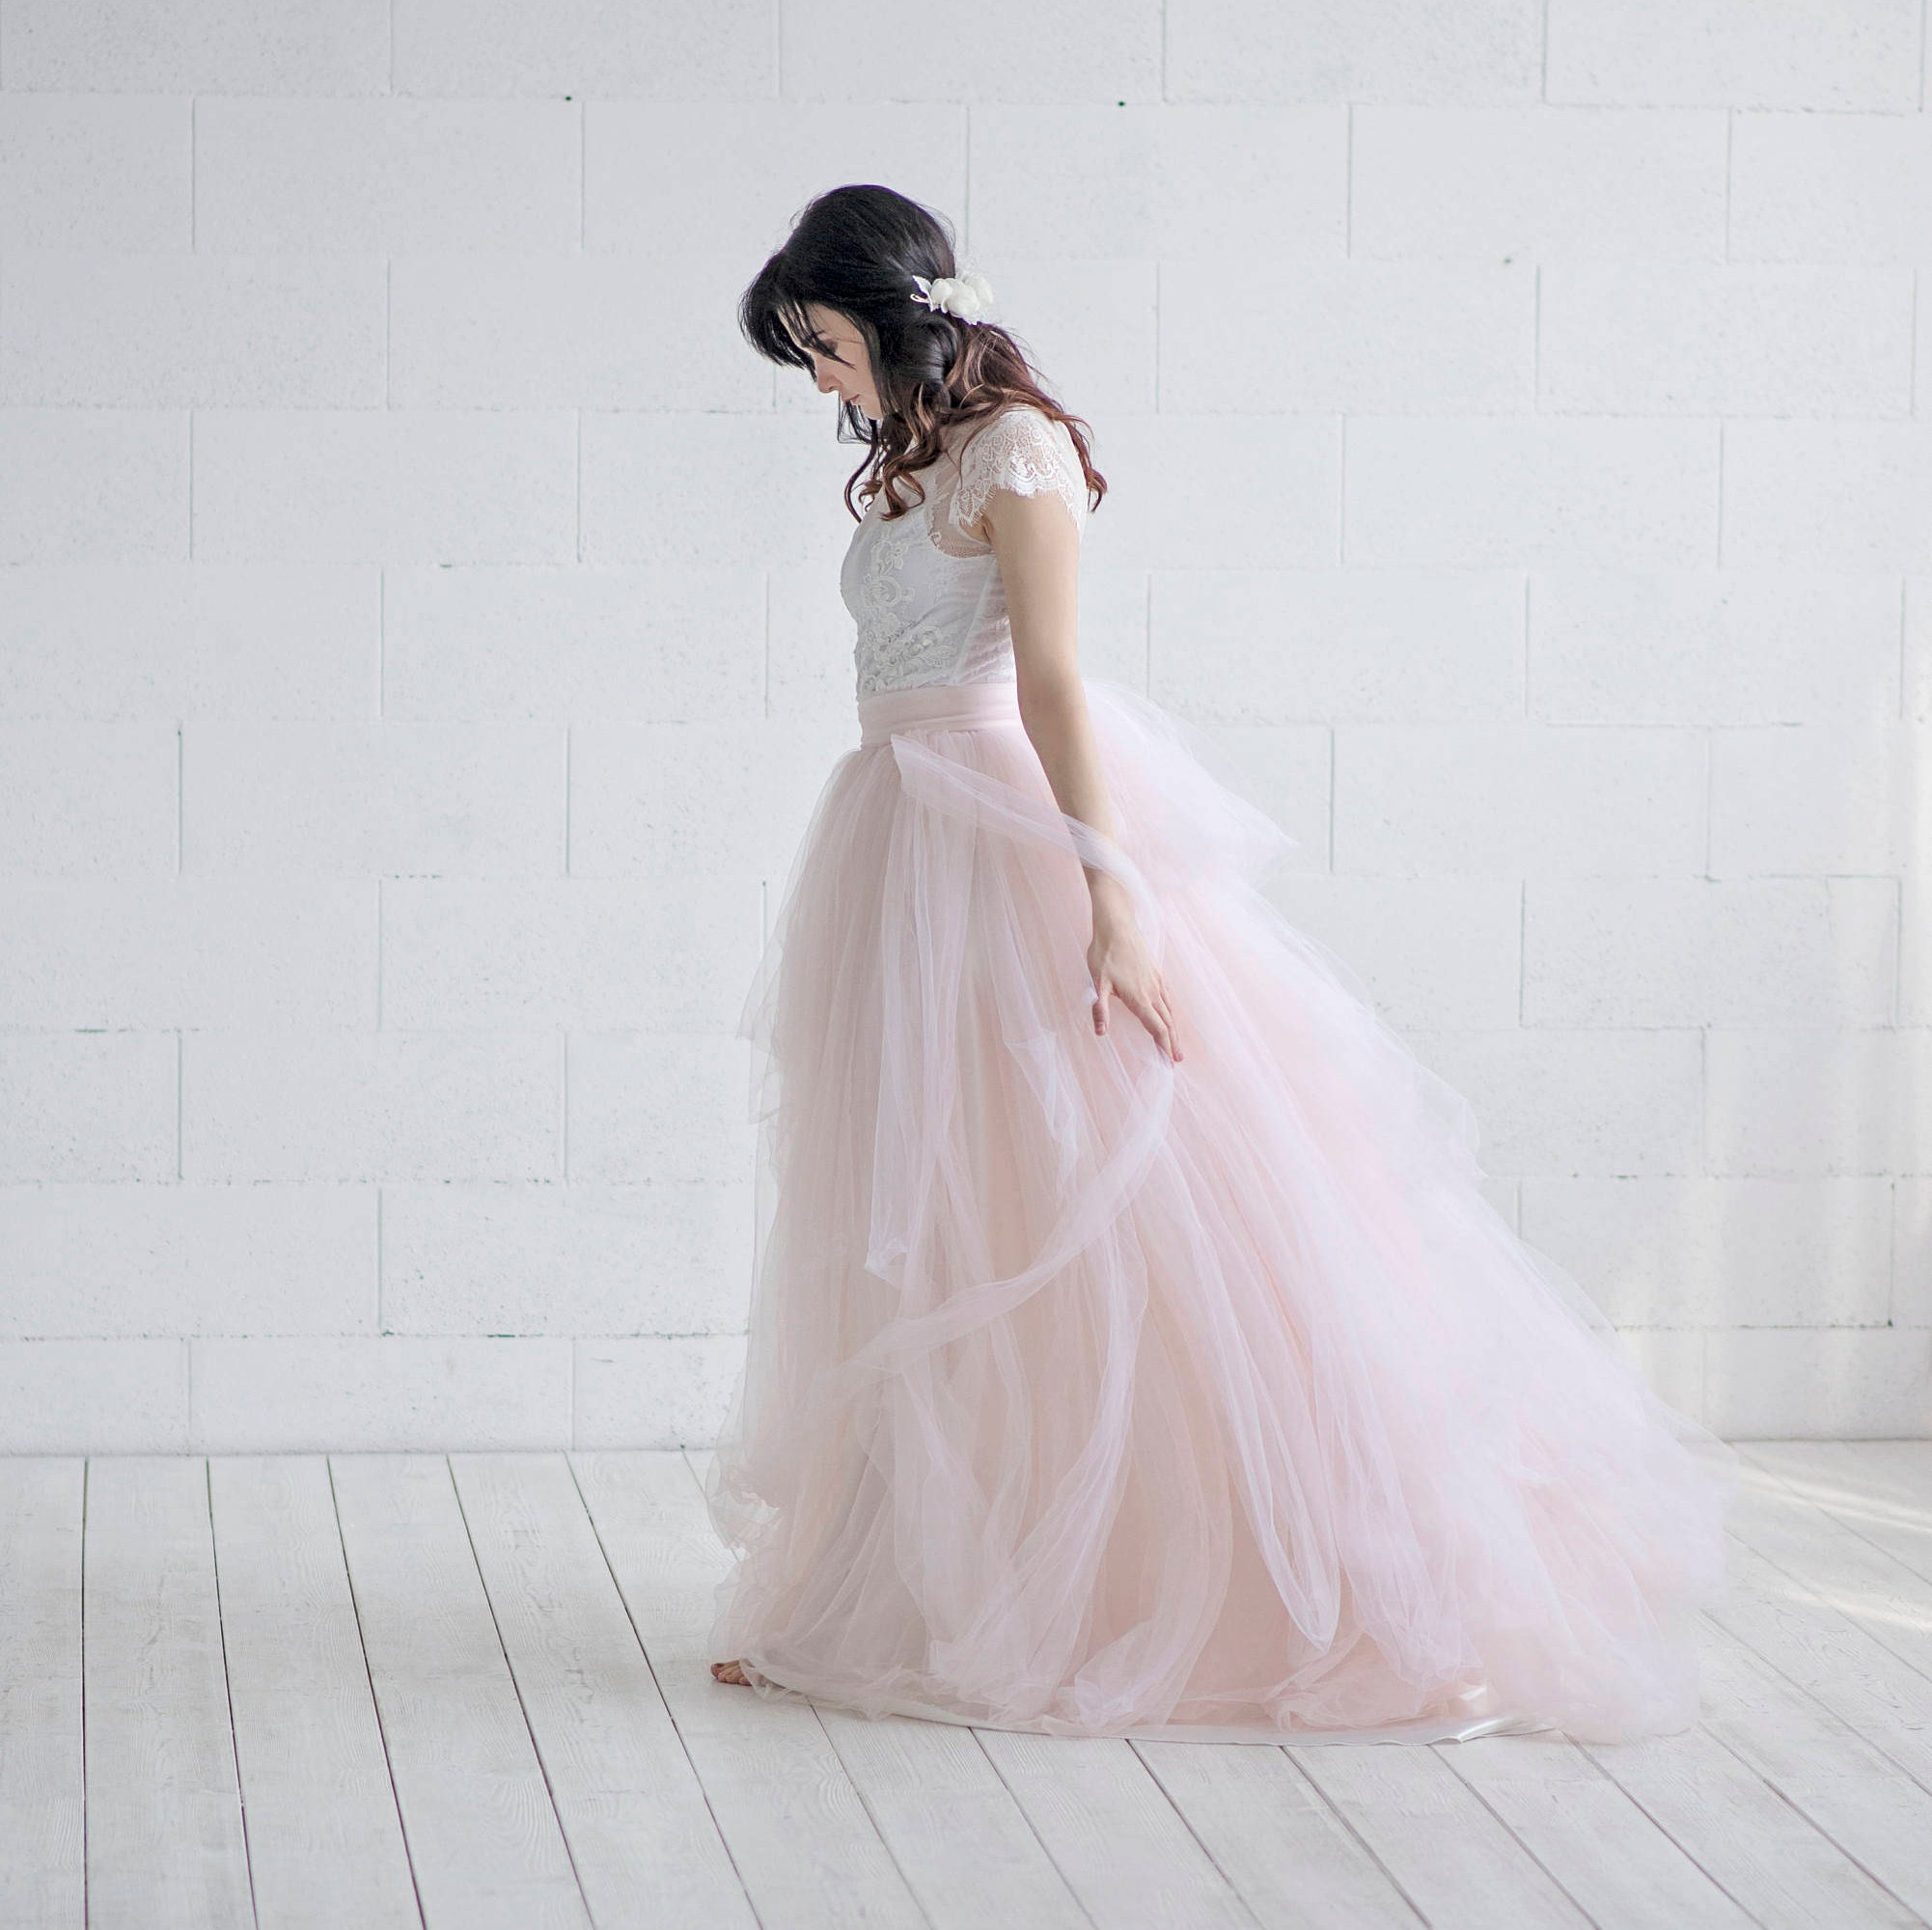 Cleo - whimsical wedding gown